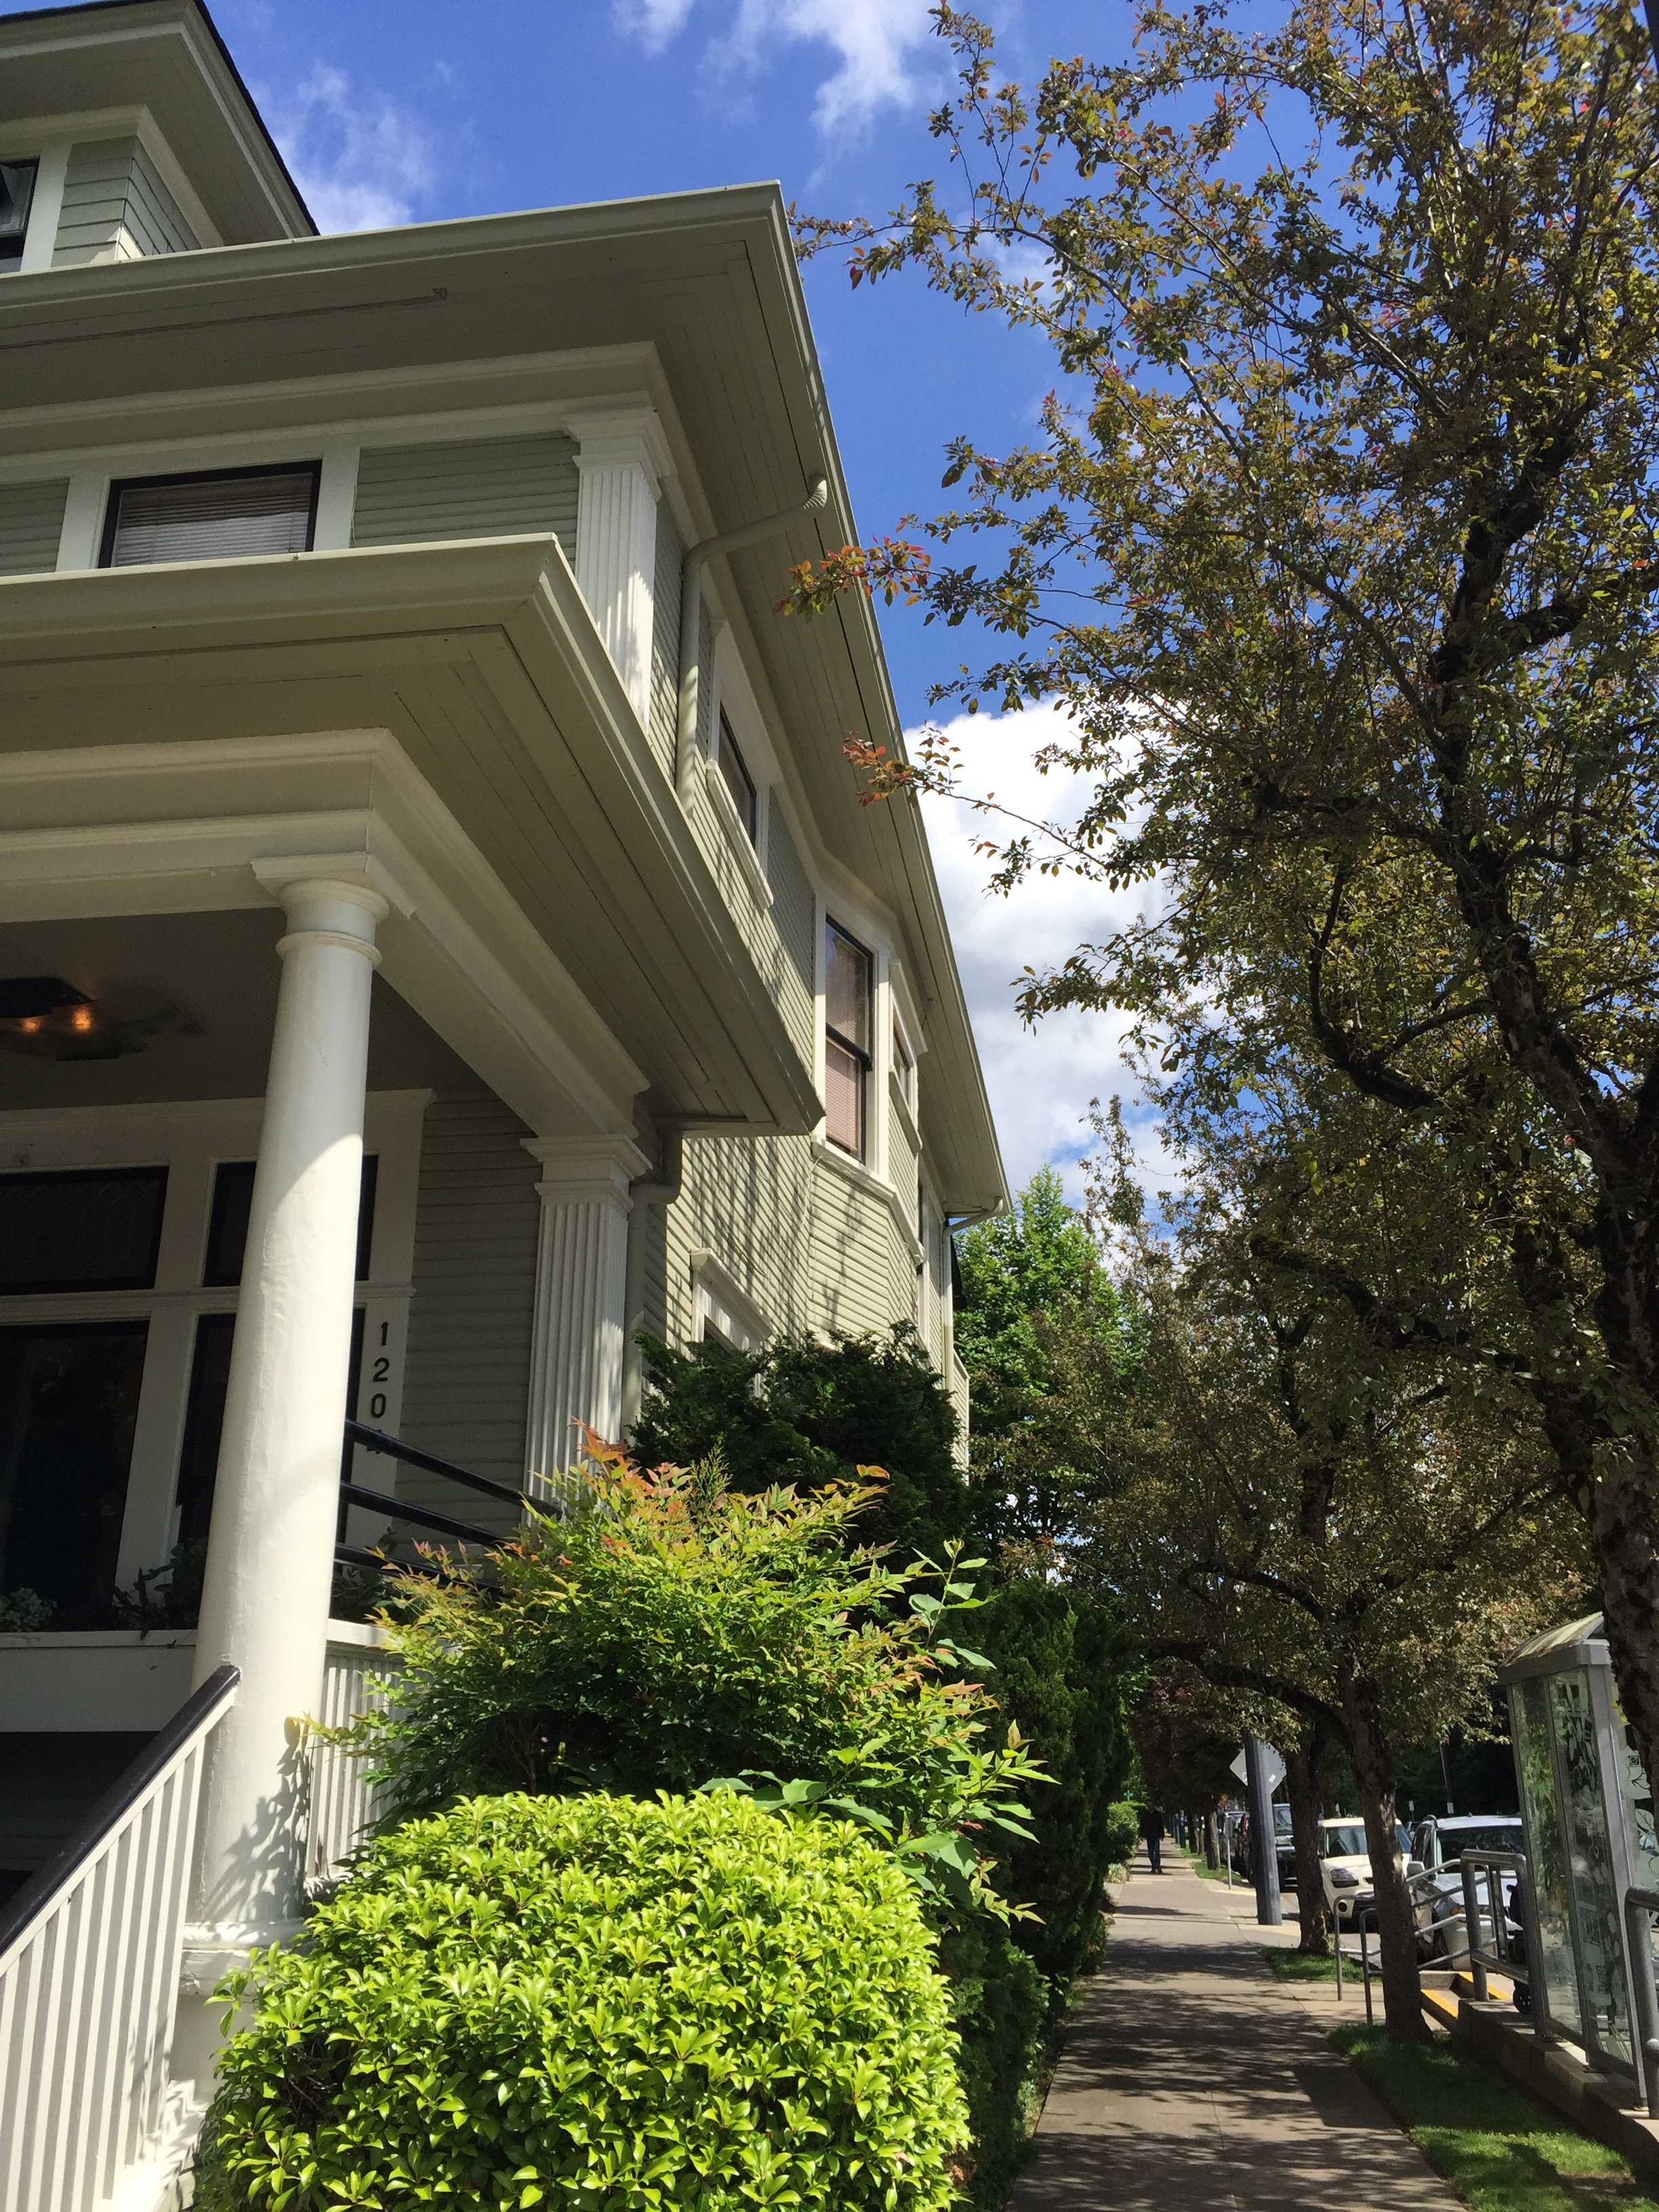 Nestled on a leafy street in Northwest Portland, Paley's Place is located inside a charming Victorian home.